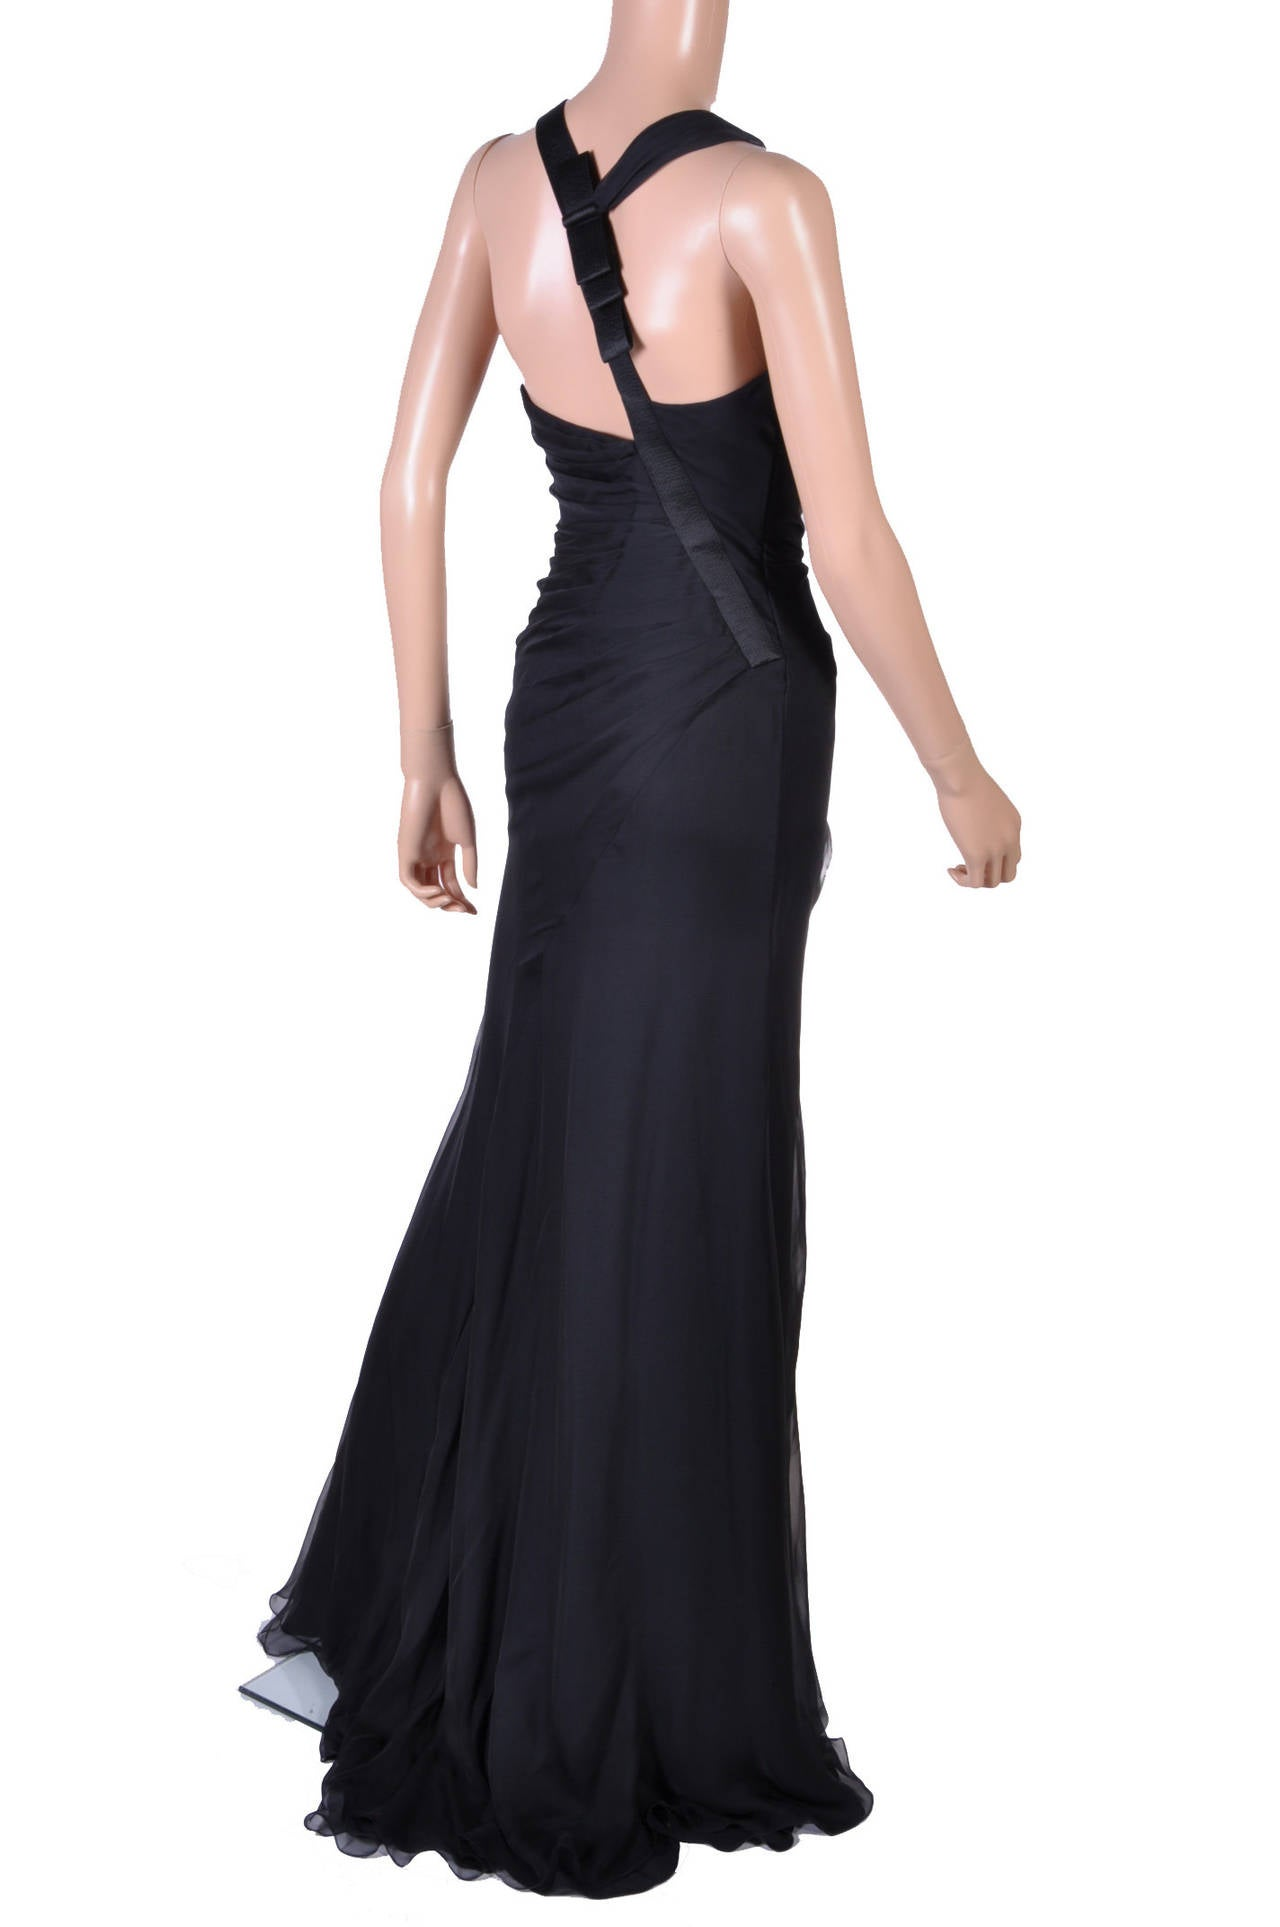 New VERSACE Black Chiffon Silk Gown For Sale 2